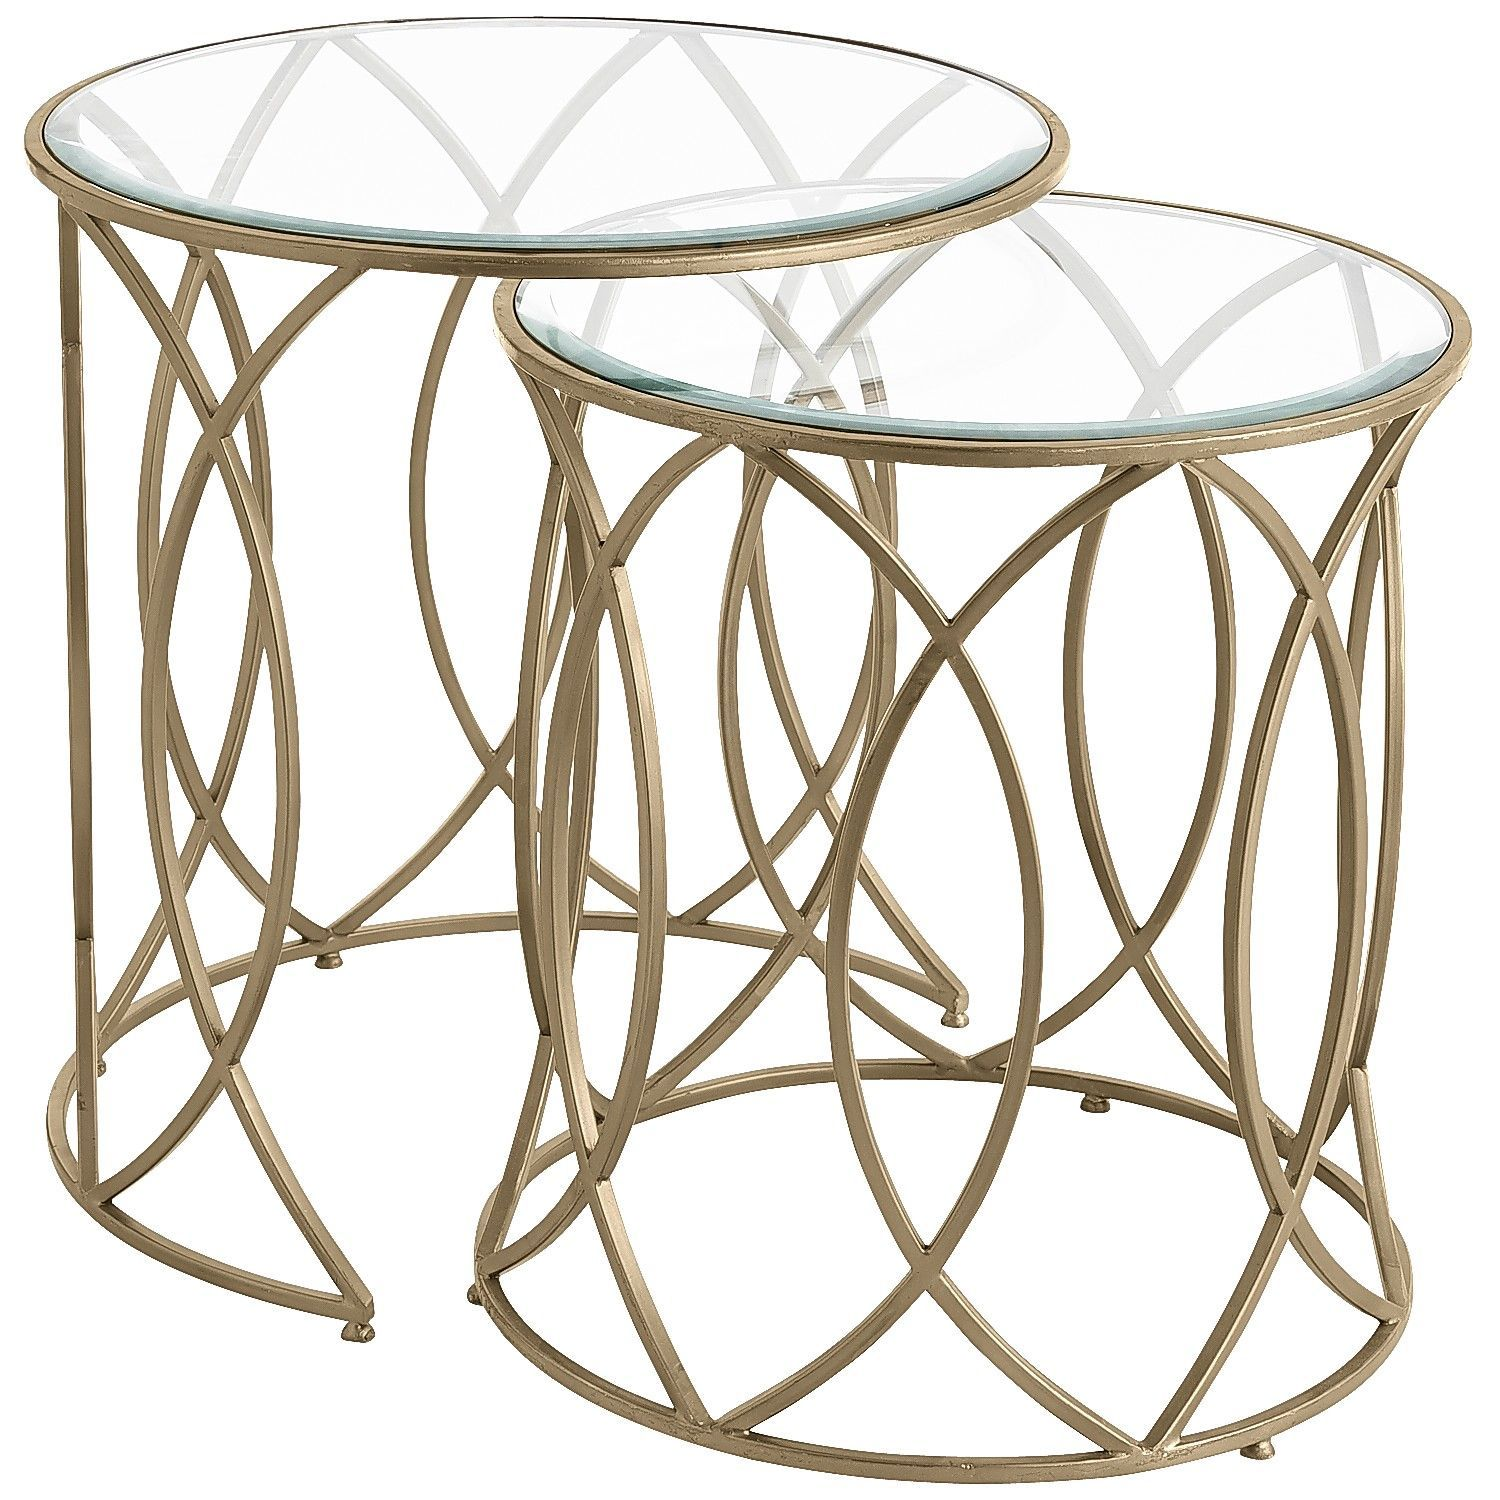 elana bronze iron round nesting tables home small accent pier one living room side imports crystal ball lamp base red table runner best coffee for rooms tabletop gas grill wooden